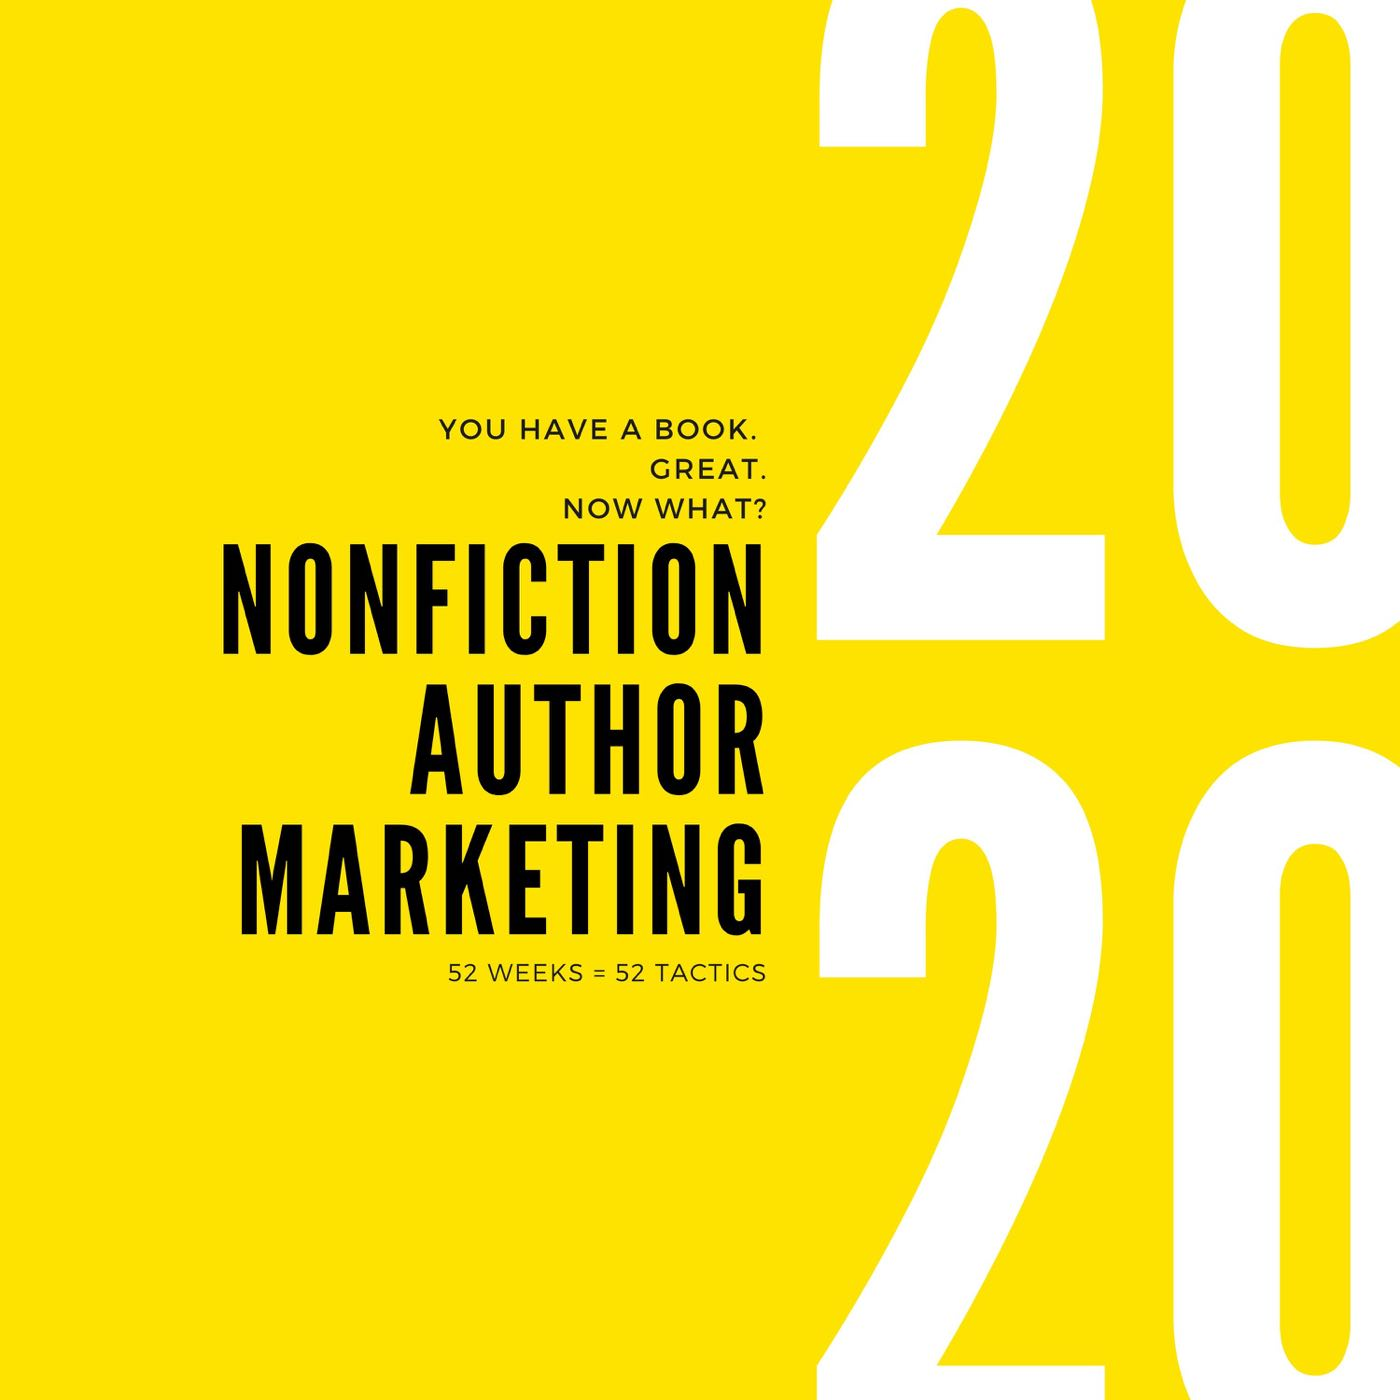 Nonfiction Author Marketing